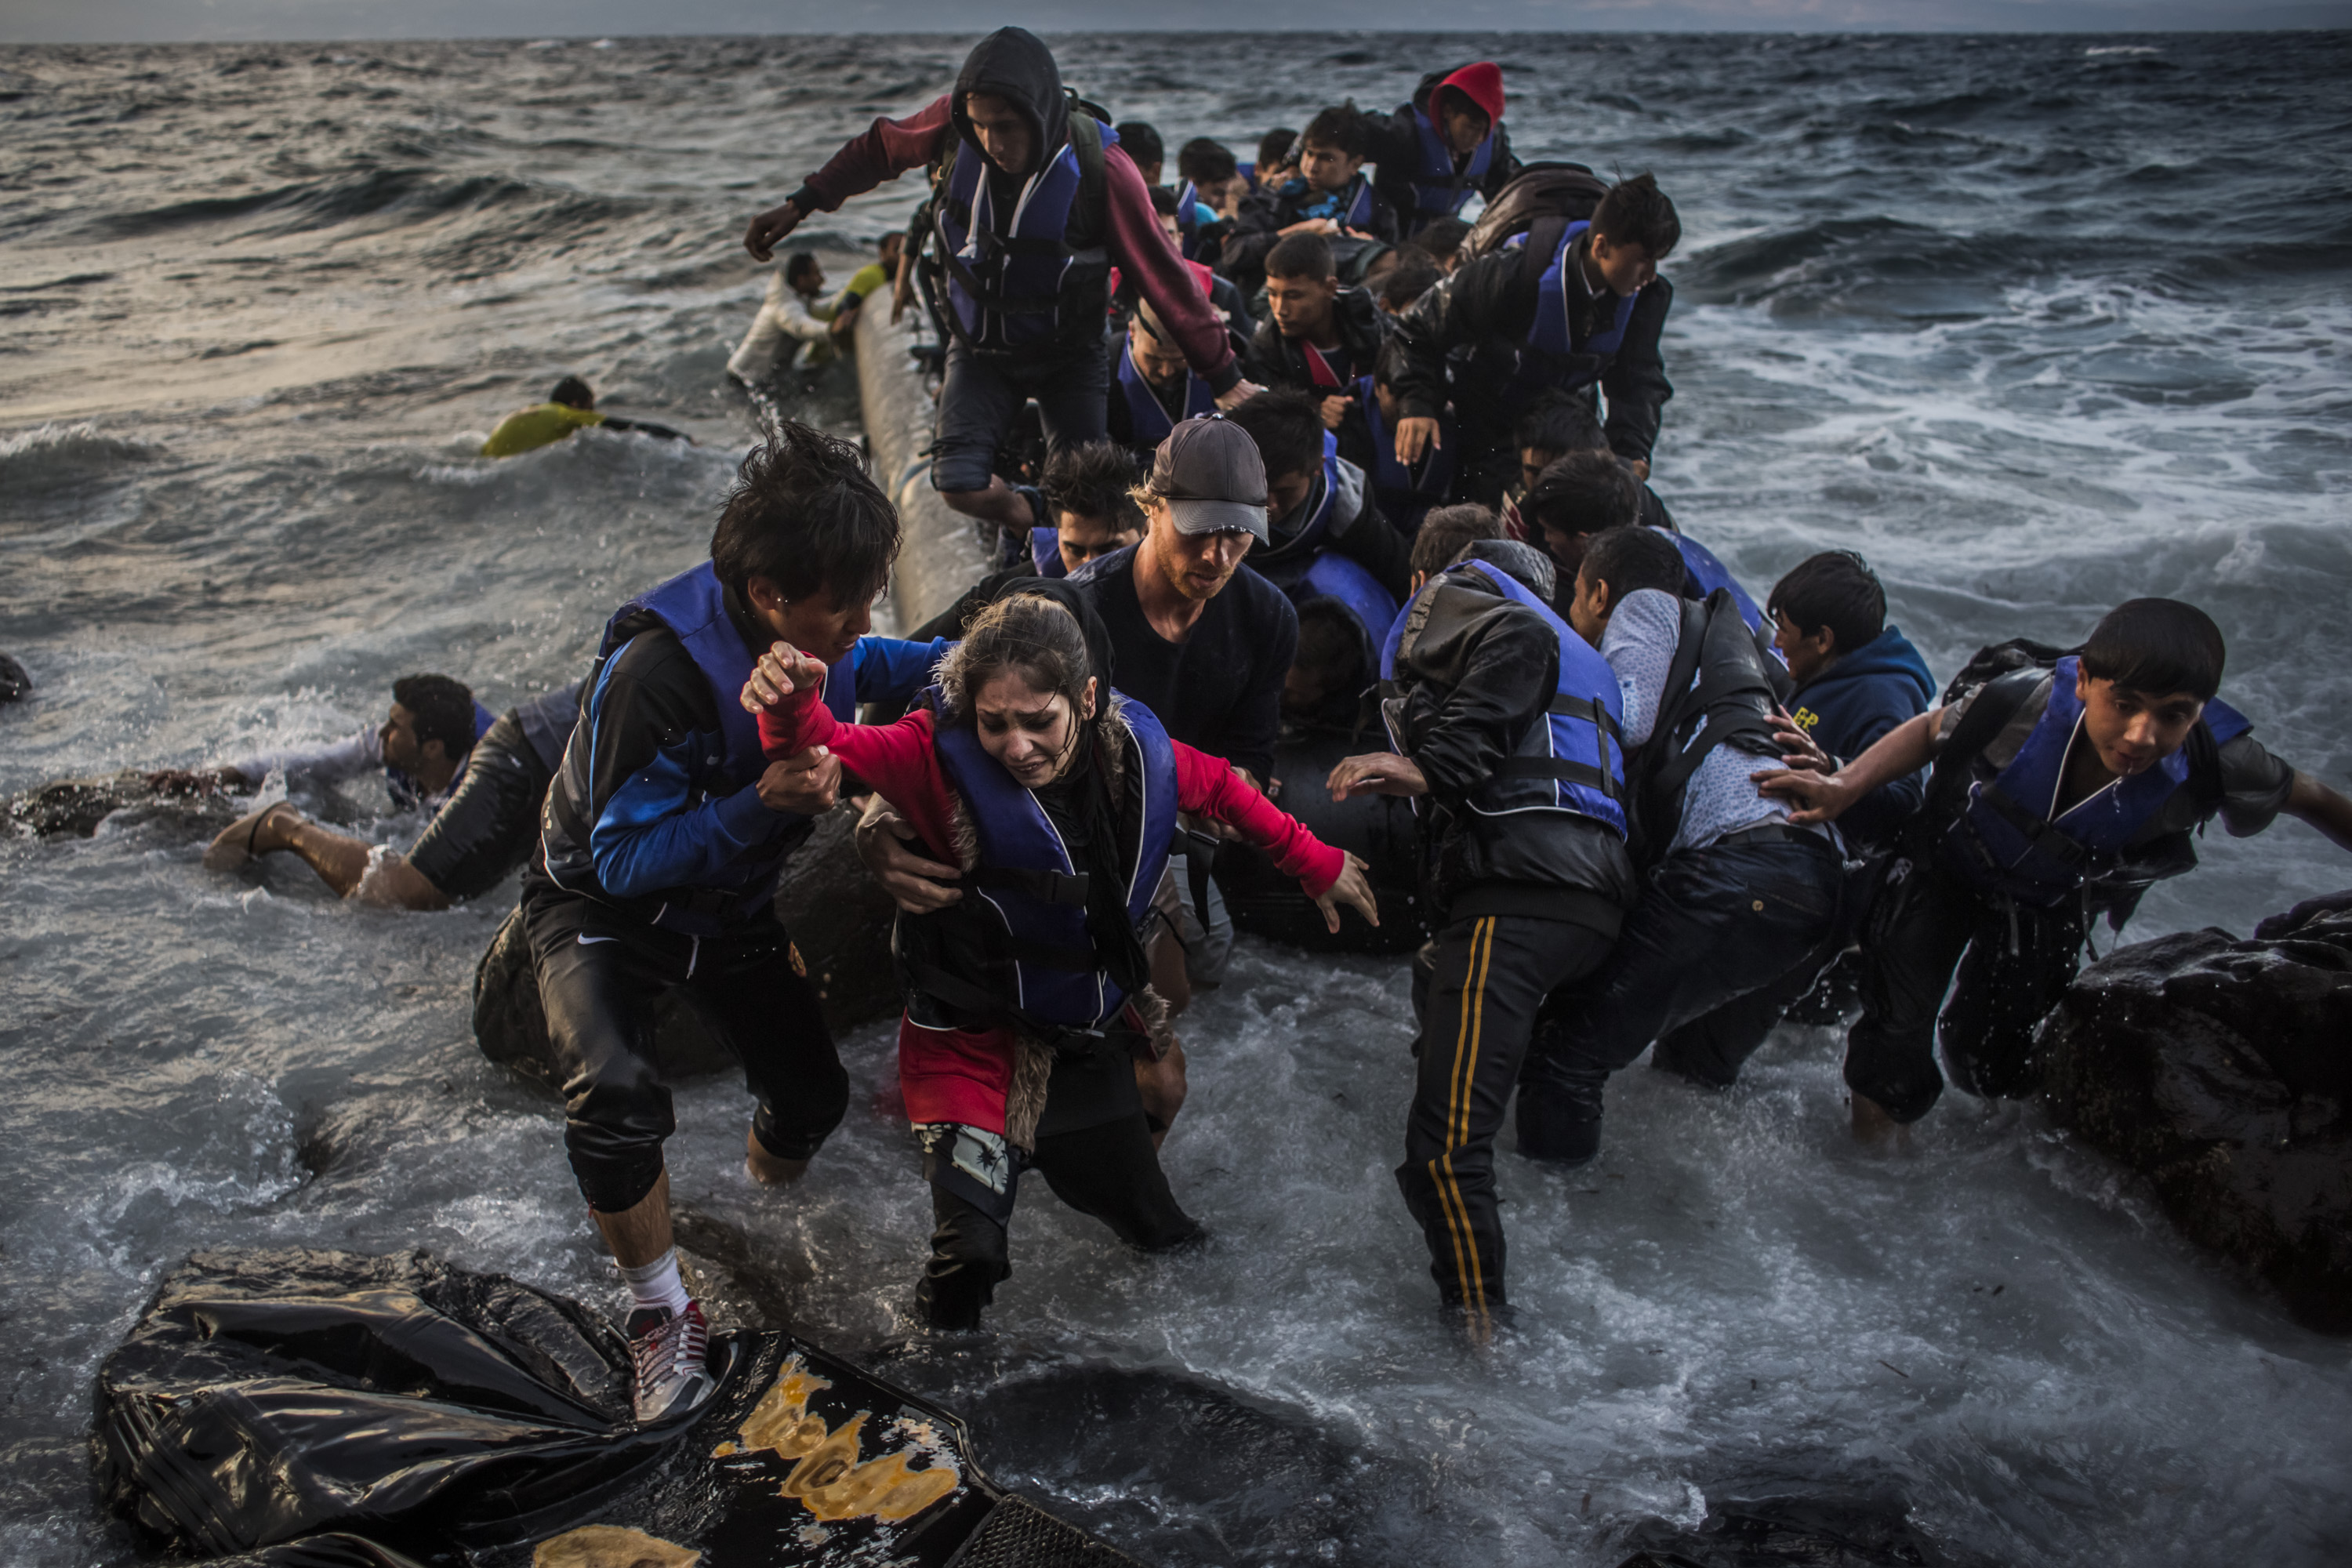 Refugees arrive on the shores of the Greek island of Lesbos, near Skala Sikaminias village, Greece, on Oct. 1, 2015, after crossing the Aegean Sea from Turkey on an inflatable boat